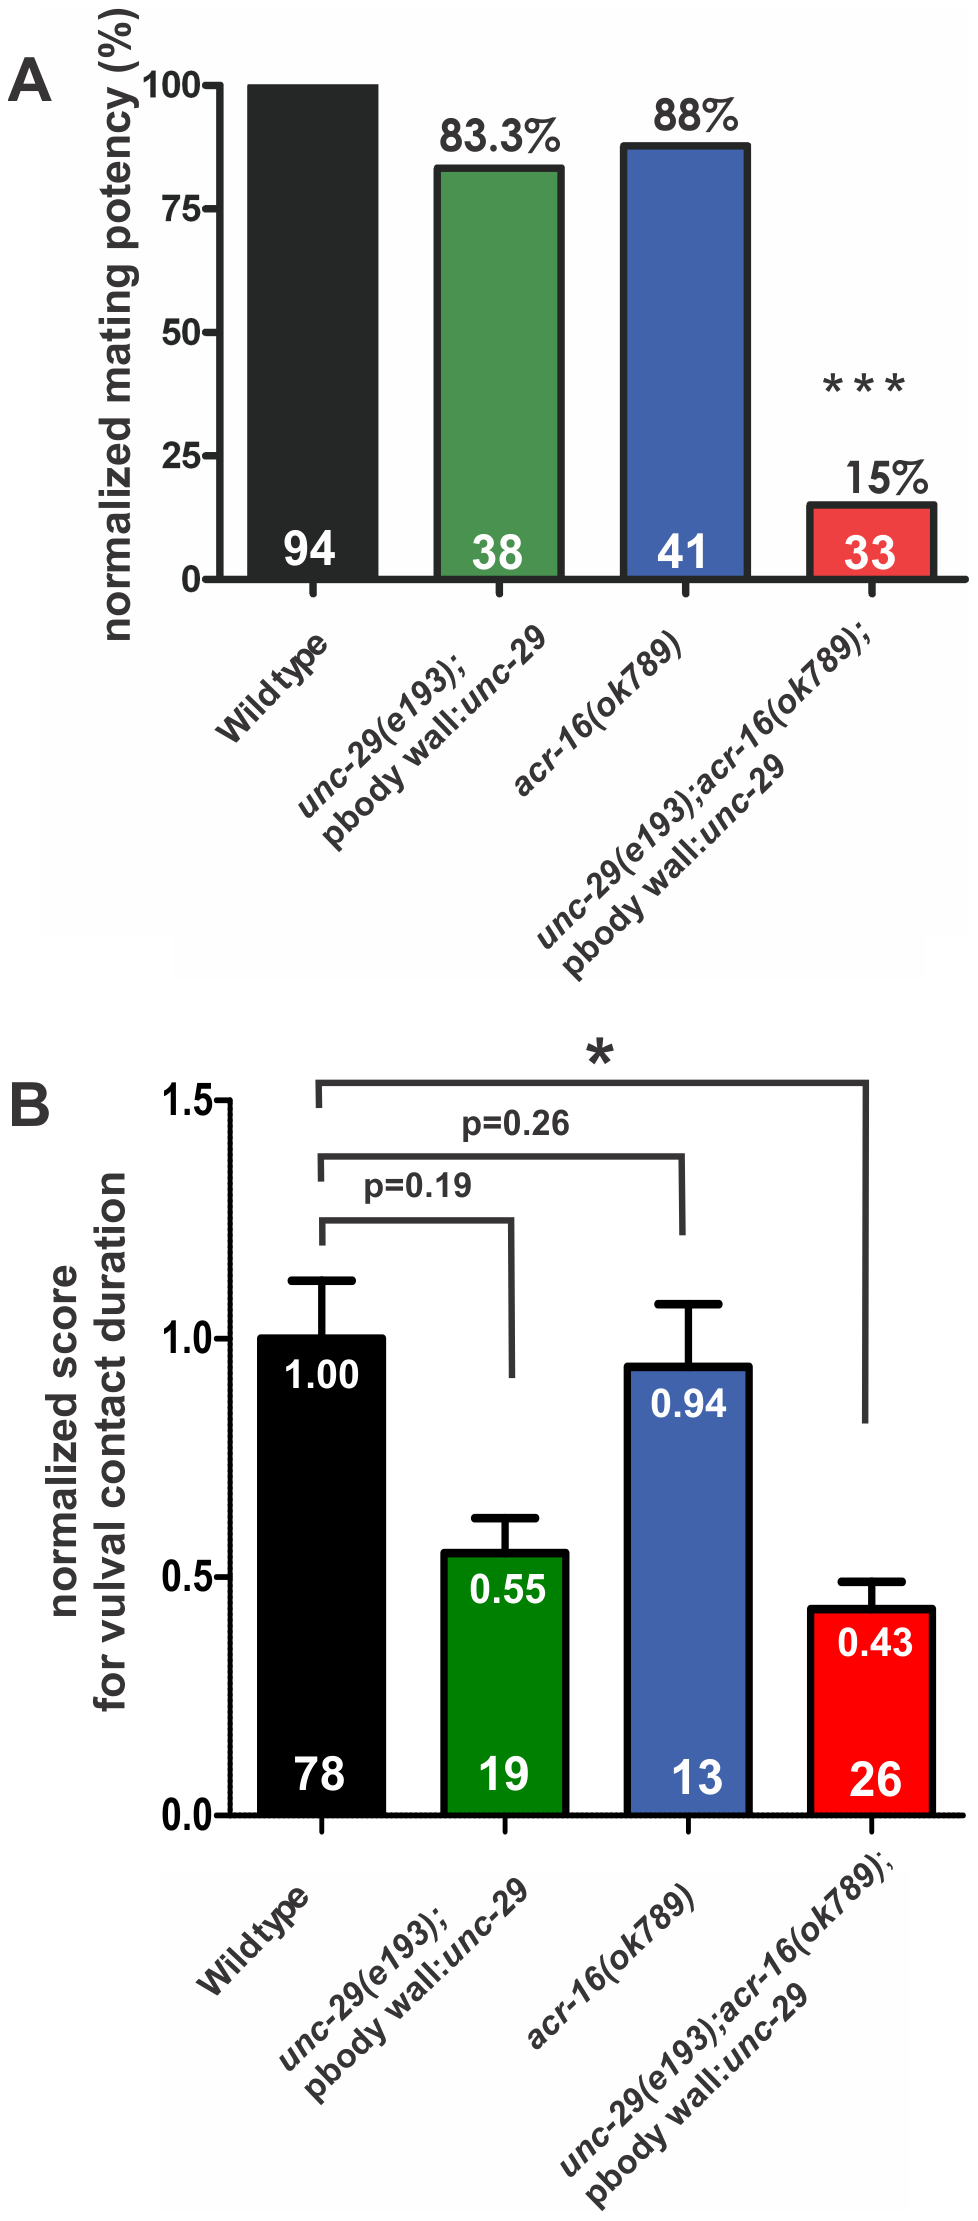 Ionotropic ACh receptors are required for sustained vulval contact.